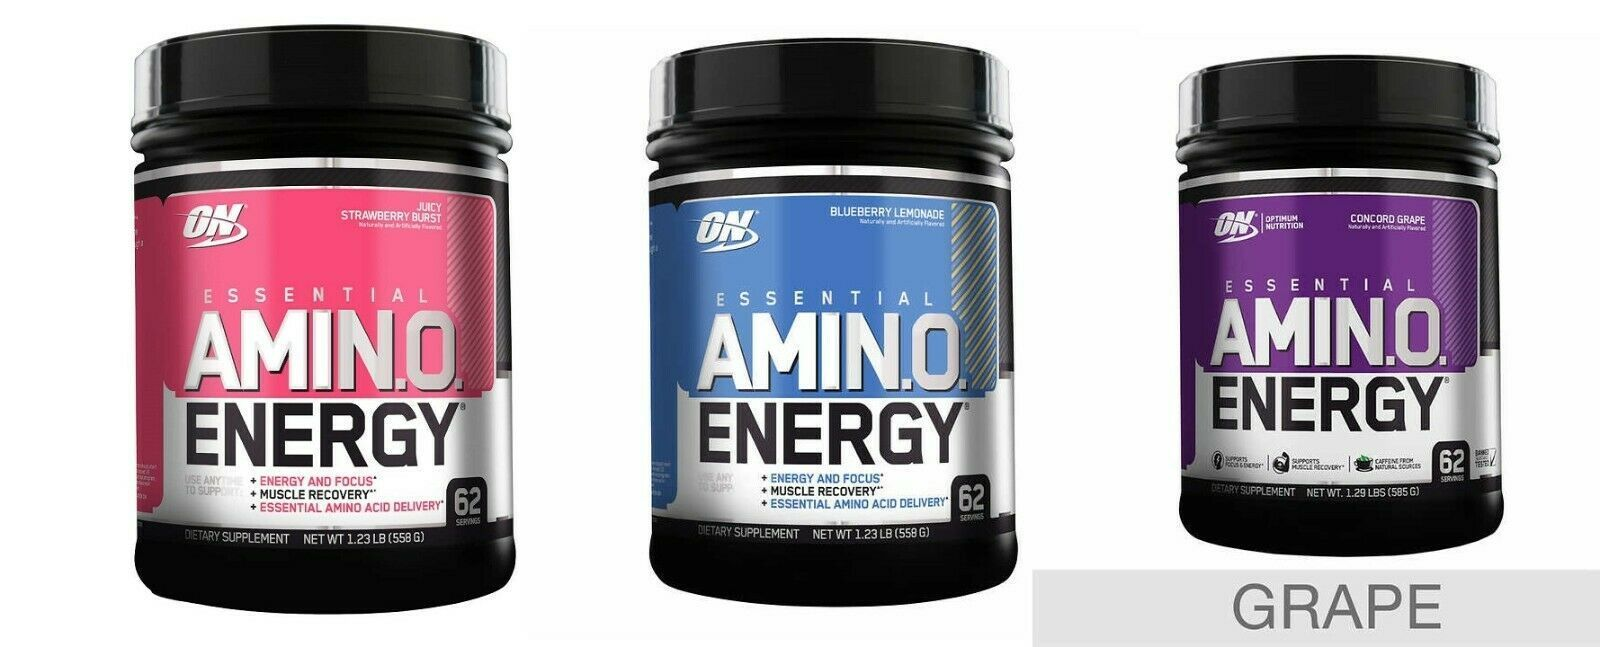 Primary image for Optimum Nutrition Essential Amino Energy, 1.23 lbs